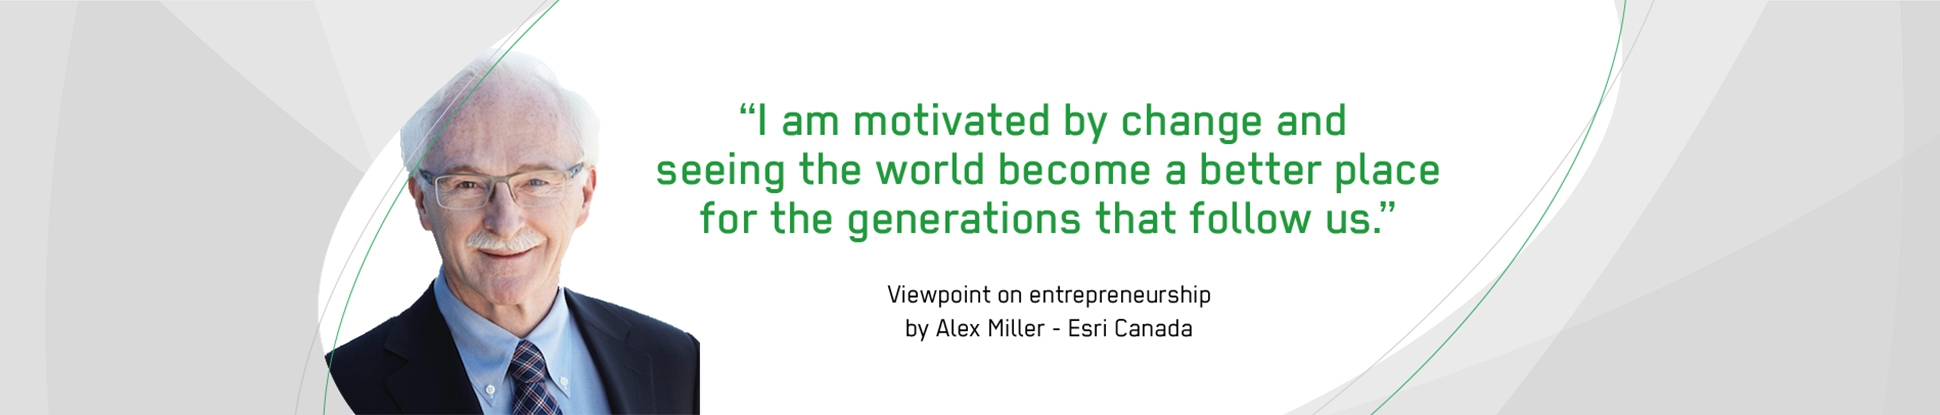 Alex Miller - Viewpoint on Entrepreneurship.jpg